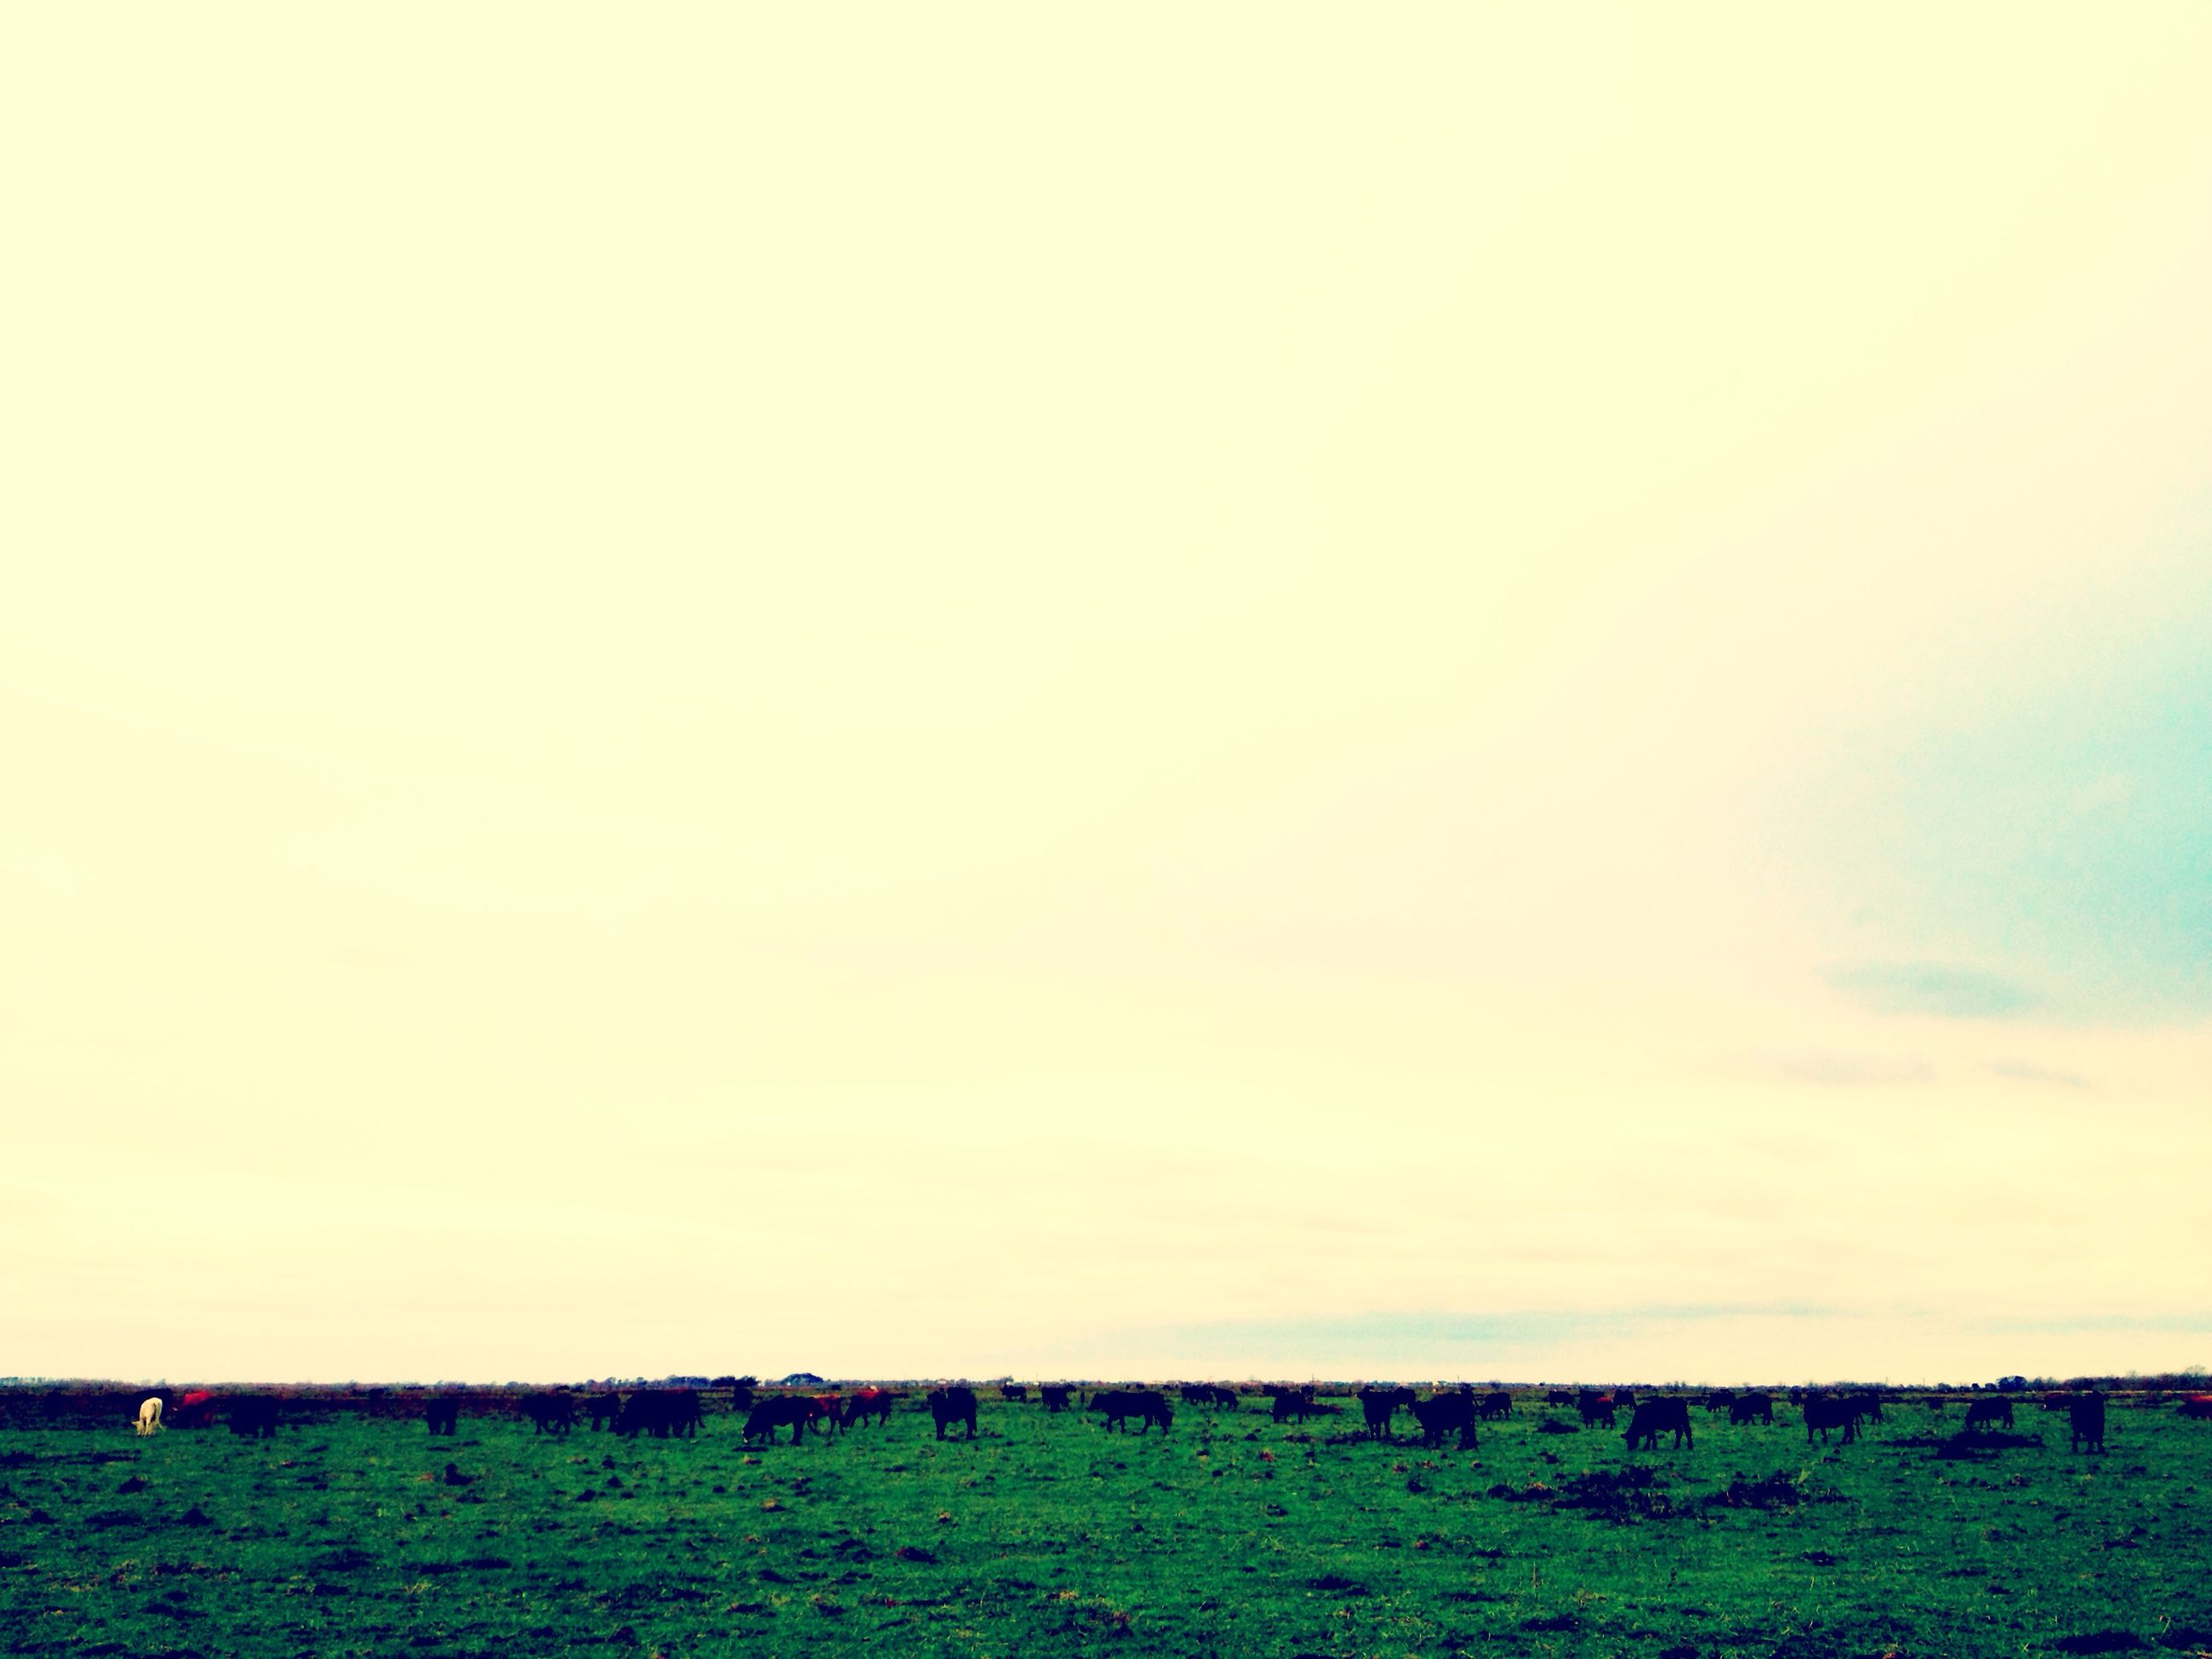 field, grass, landscape, animal themes, rural scene, grassy, tranquil scene, copy space, tranquility, agriculture, grazing, nature, clear sky, domestic animals, horizon over land, beauty in nature, sky, farm, mammal, scenics